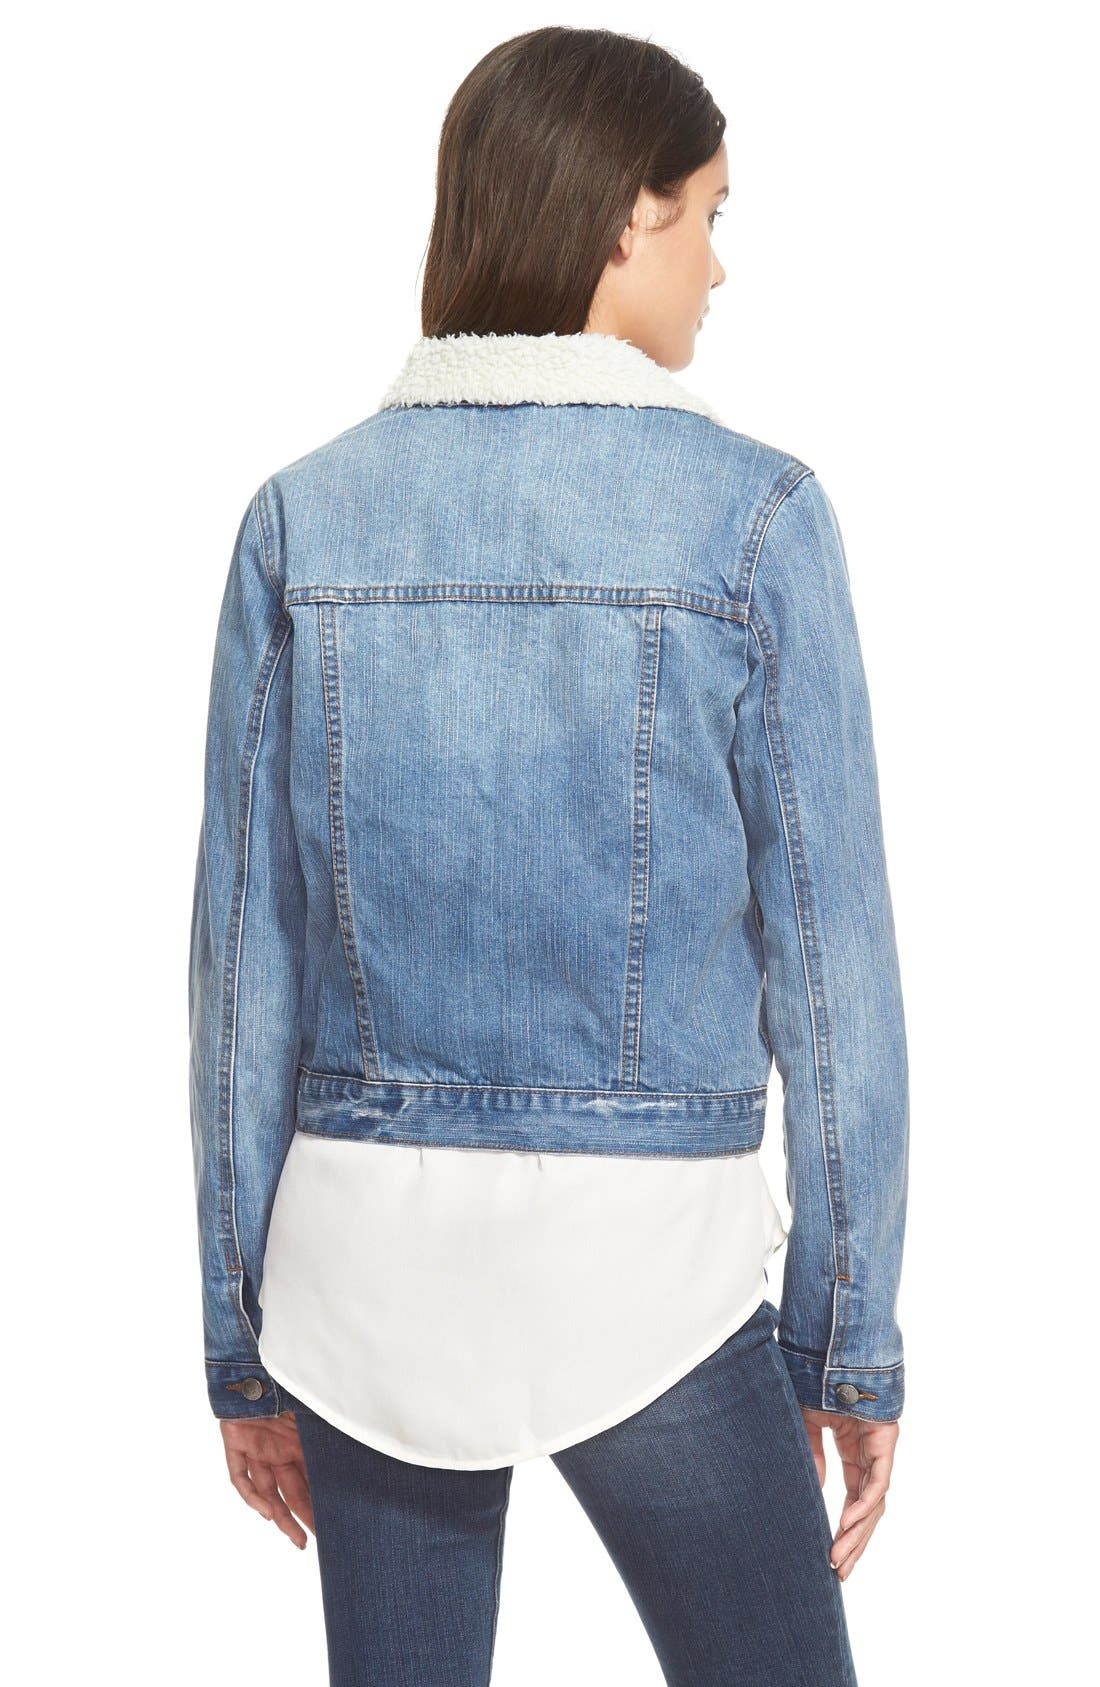 'Santa Fe' Denim Jacket,                             Alternate thumbnail 3, color,                             Blue